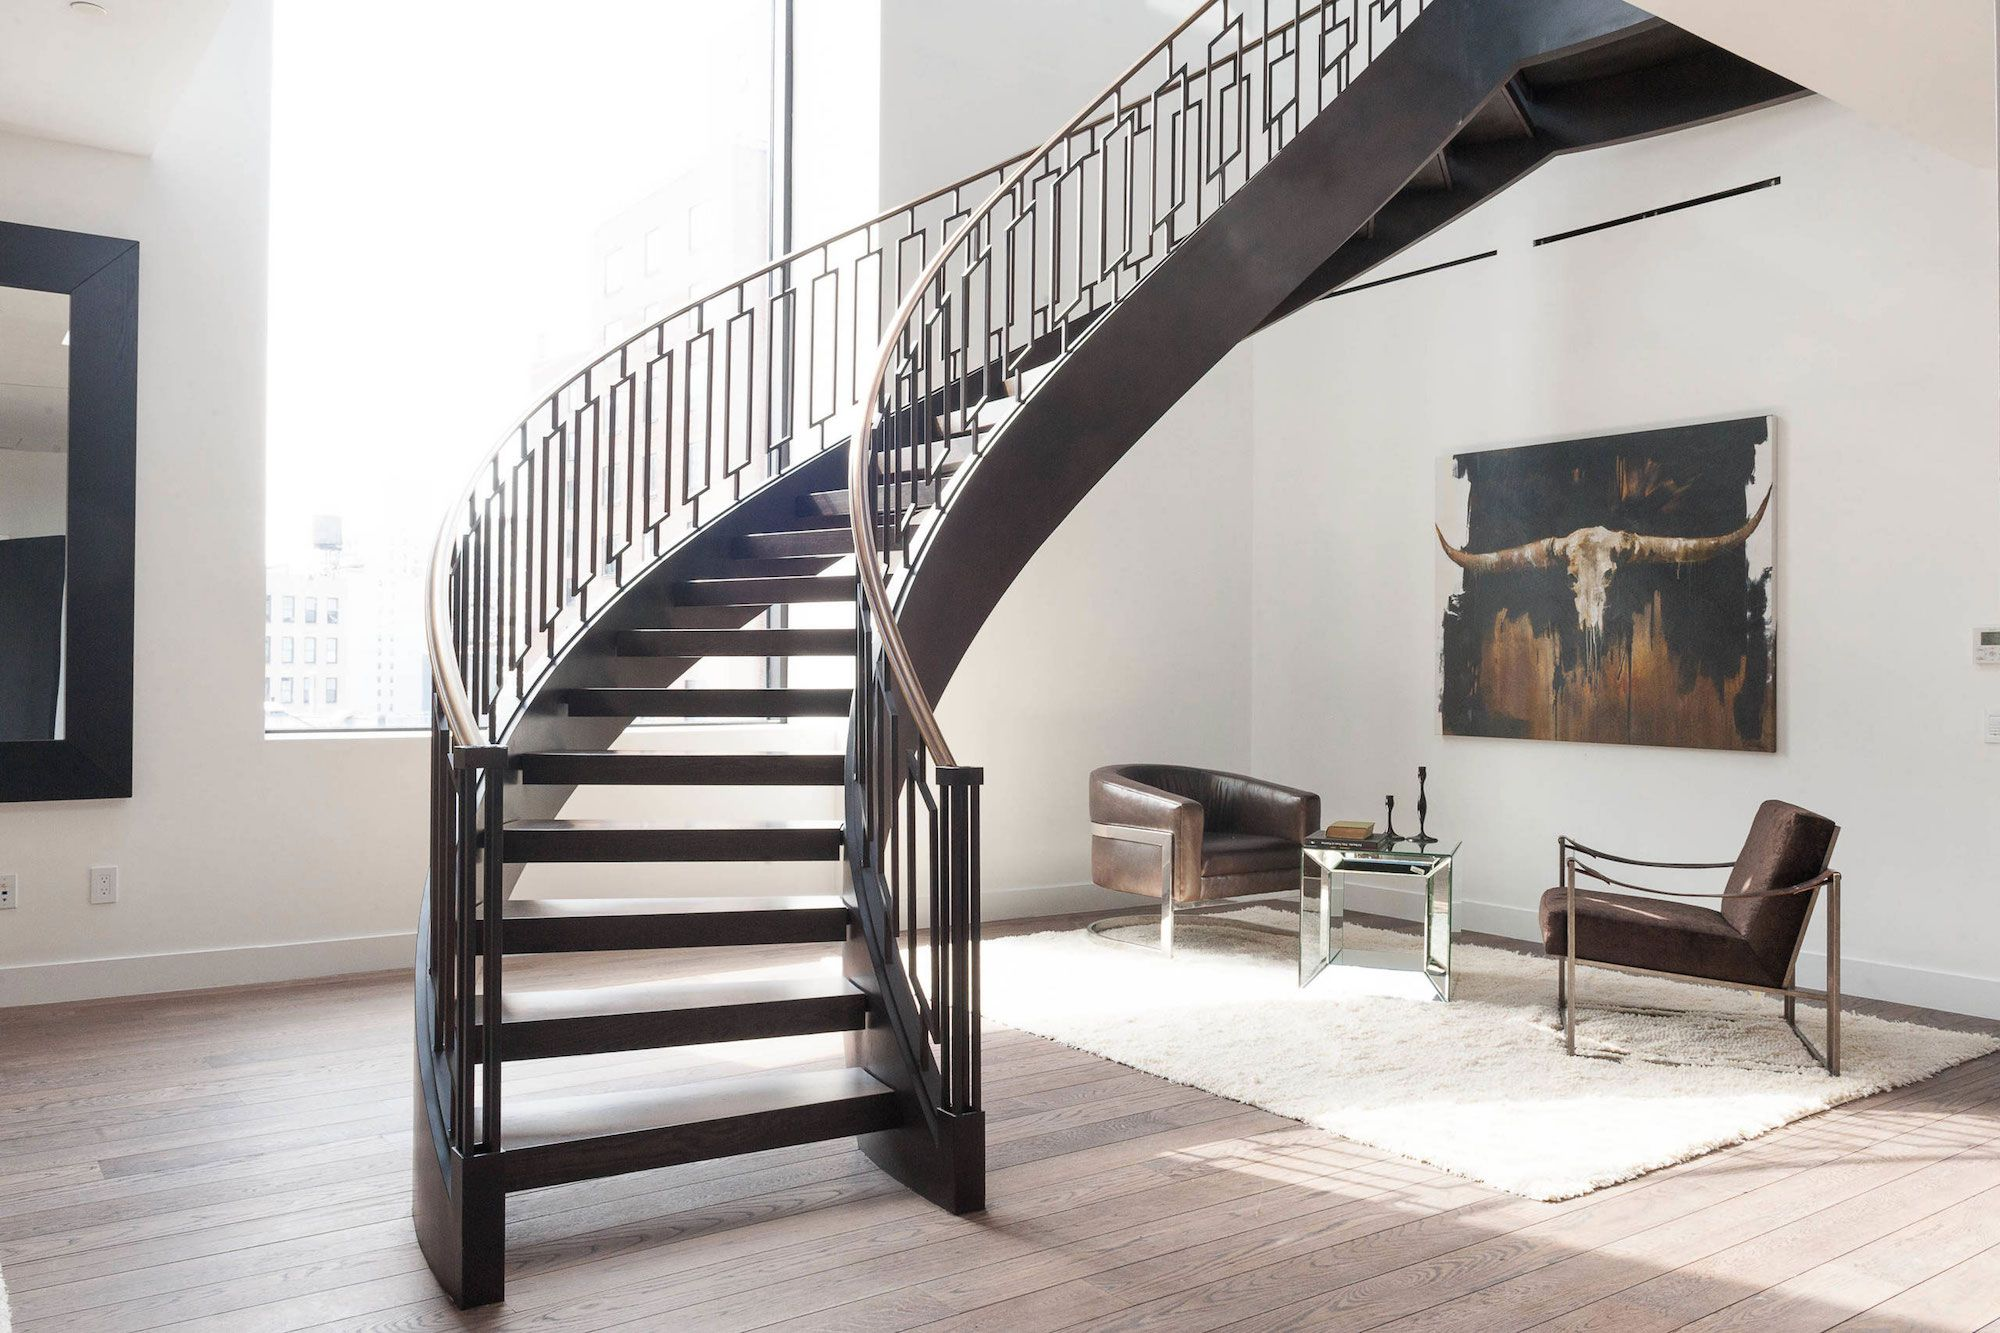 66 east eleventh street penthouse in new york by delos - Escalier interieur design ...